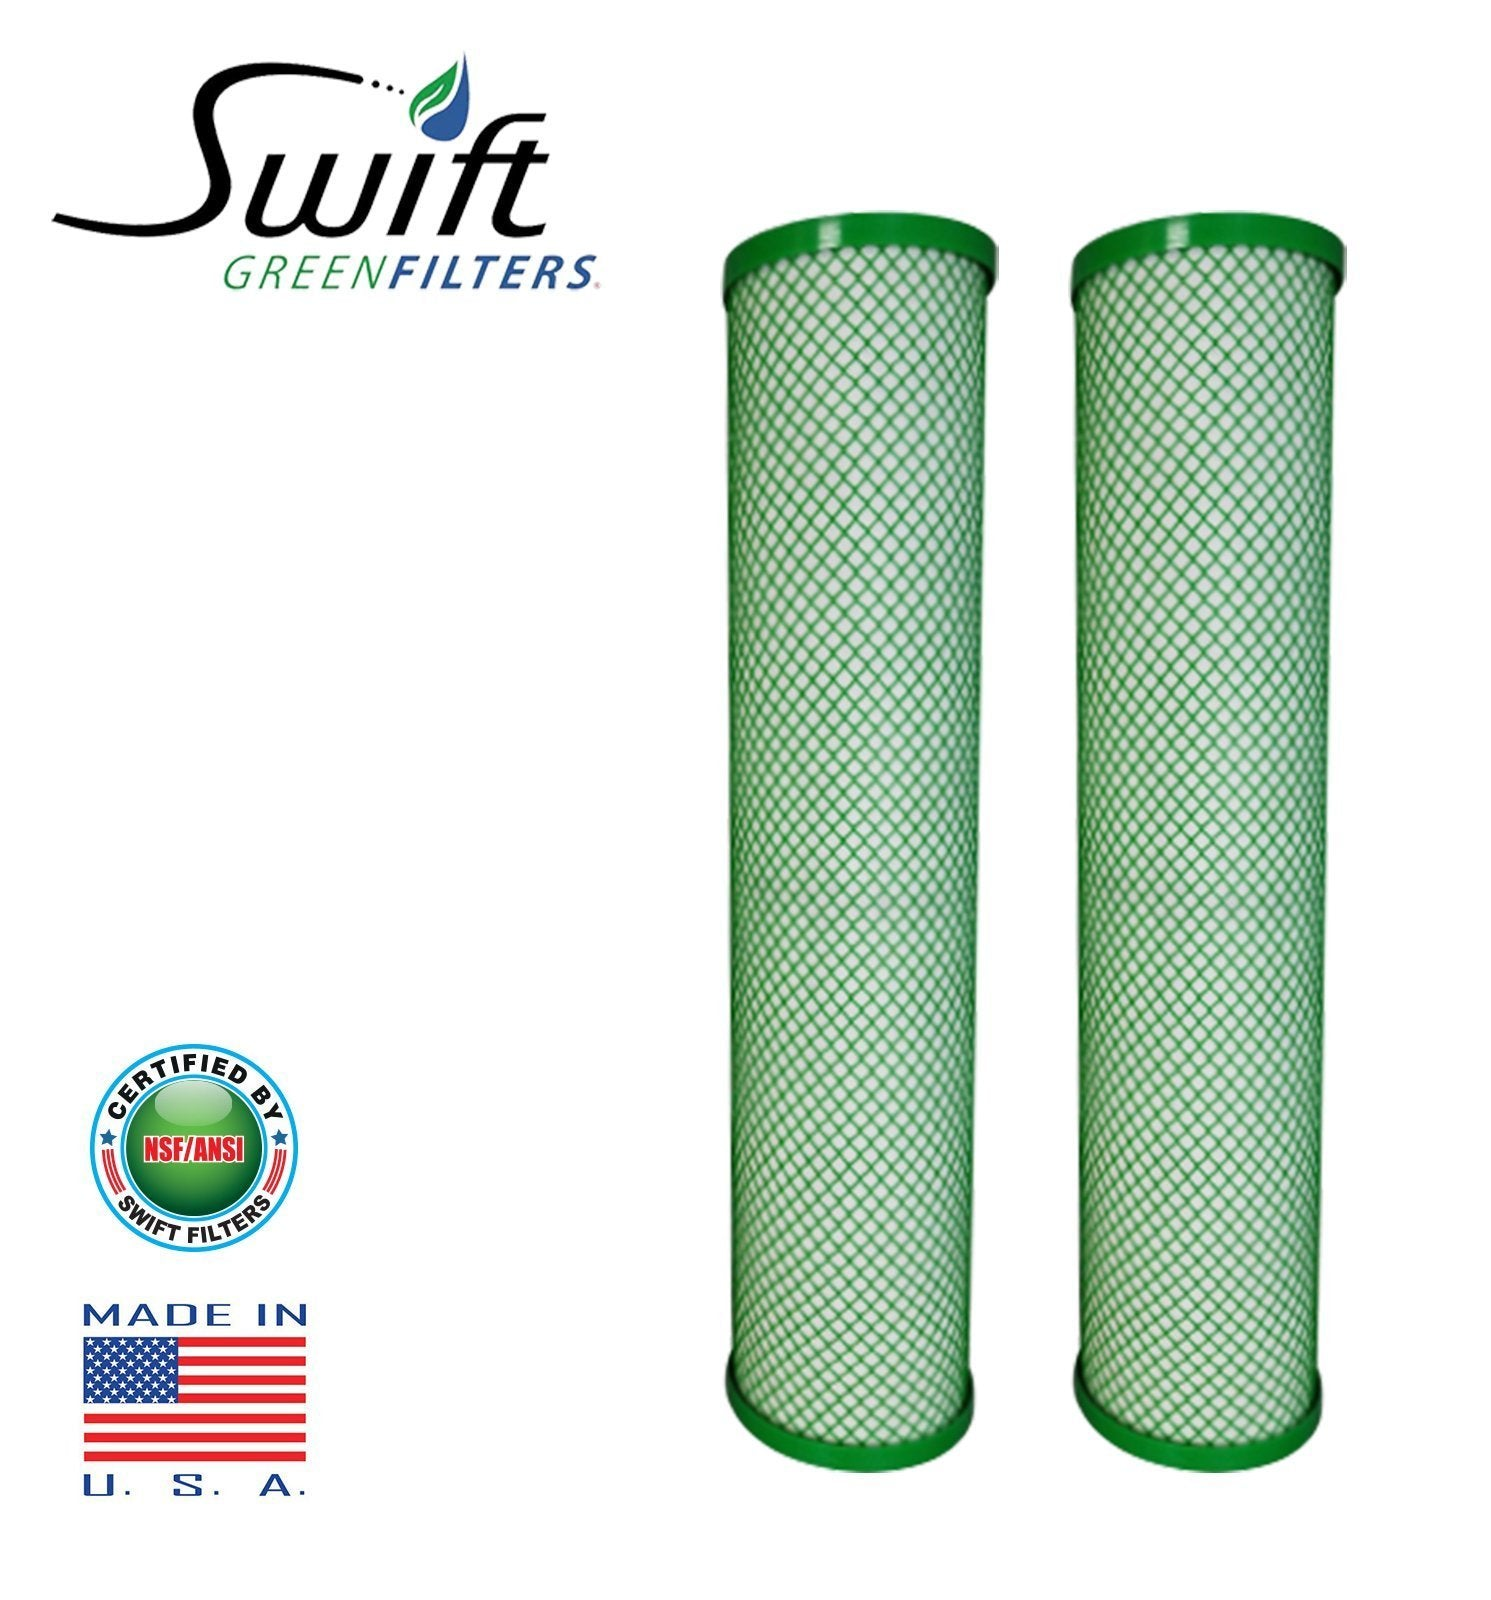 "Swift (SGFB20CL2) 20""x 4.5"" CL2 Green Block Carbon Filter 10 Micron By Swift Green Filters - The Filters Club"